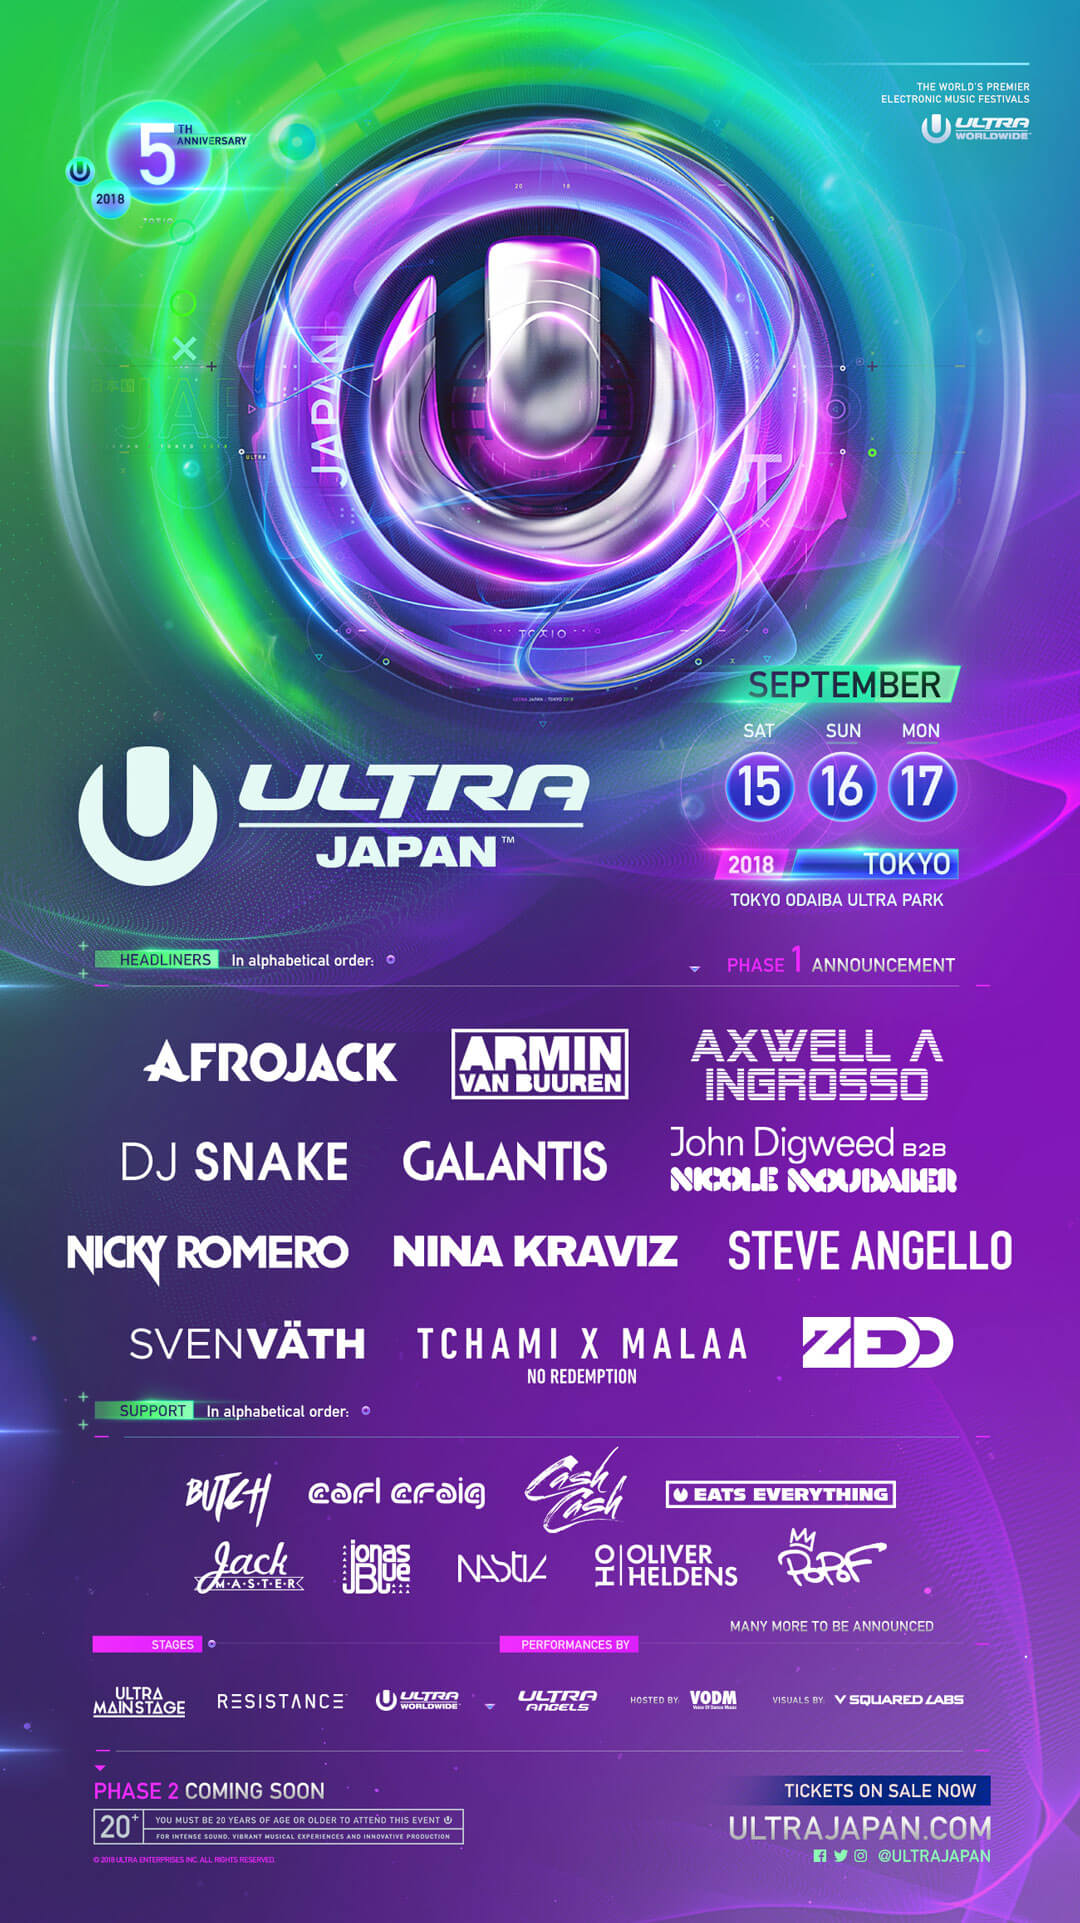 ULTRA Japan Delivers Phase One Lineup  Ahead of Monumental 5th Anniversary